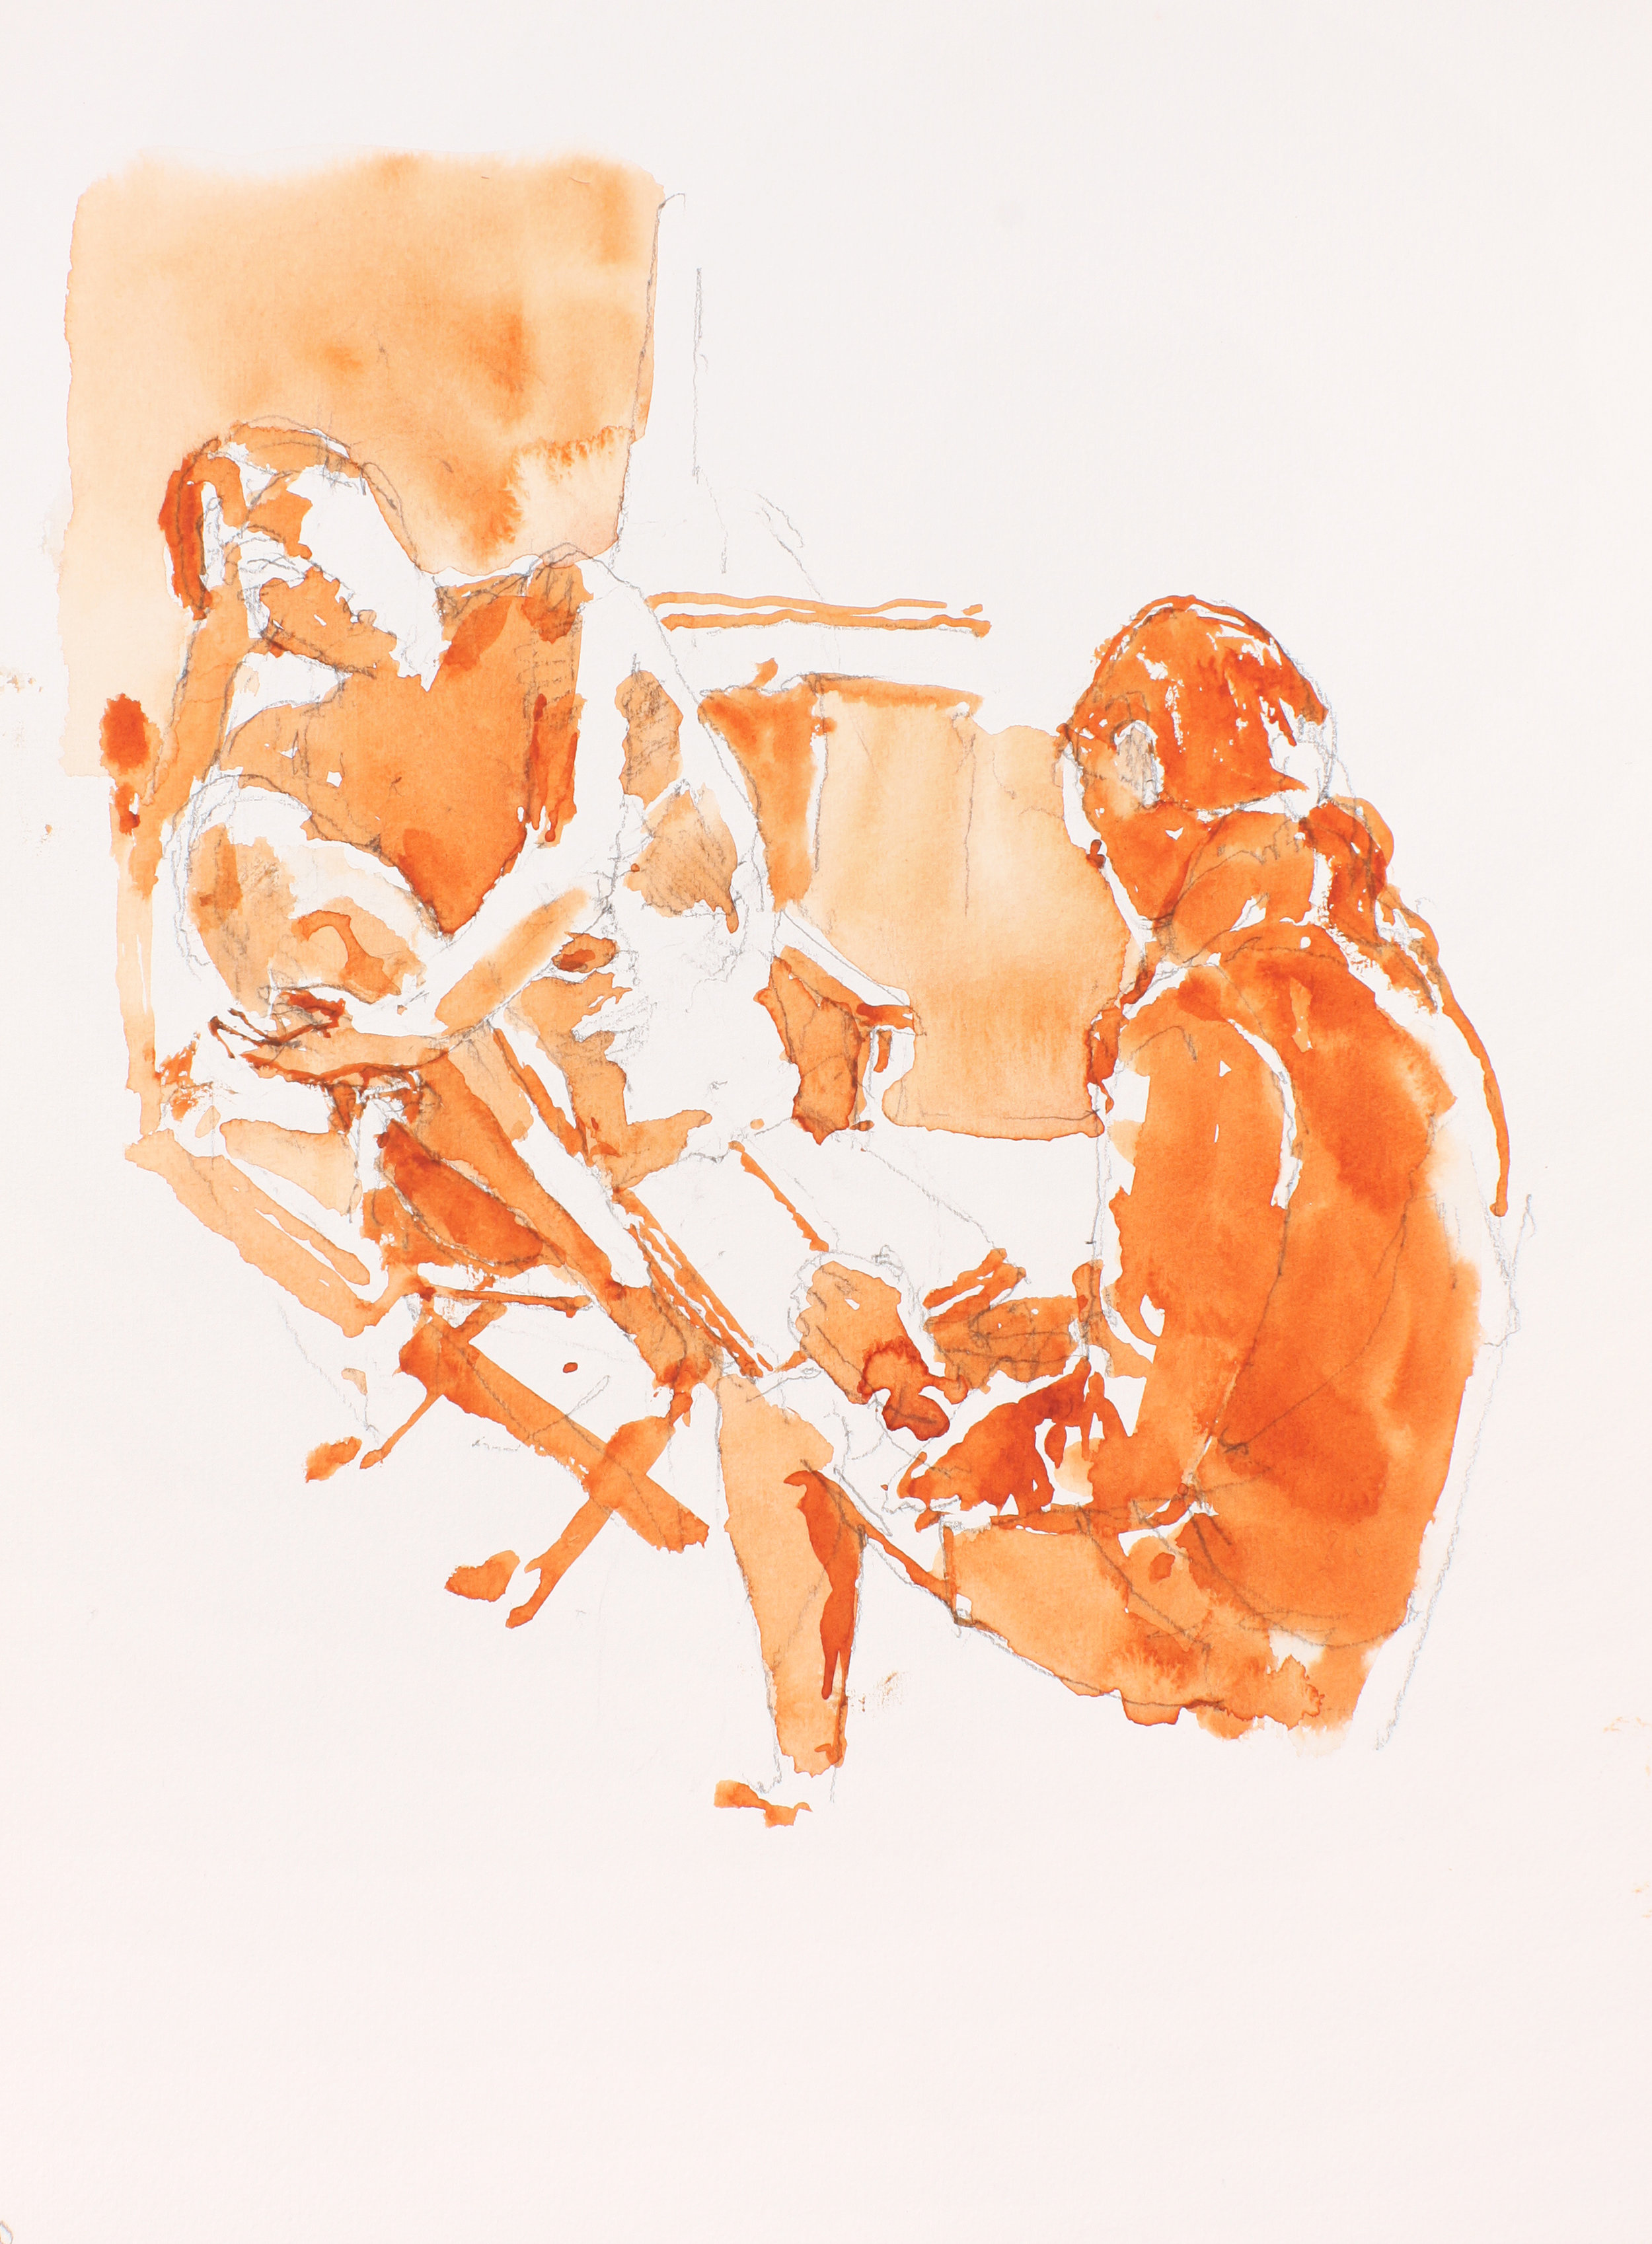 2003_Nude_in_Folding_Chaor_Seated_Figure_Wearing_Jacket_watercolour_and_pencil_on_paper_15x11in_WPF226.jpg